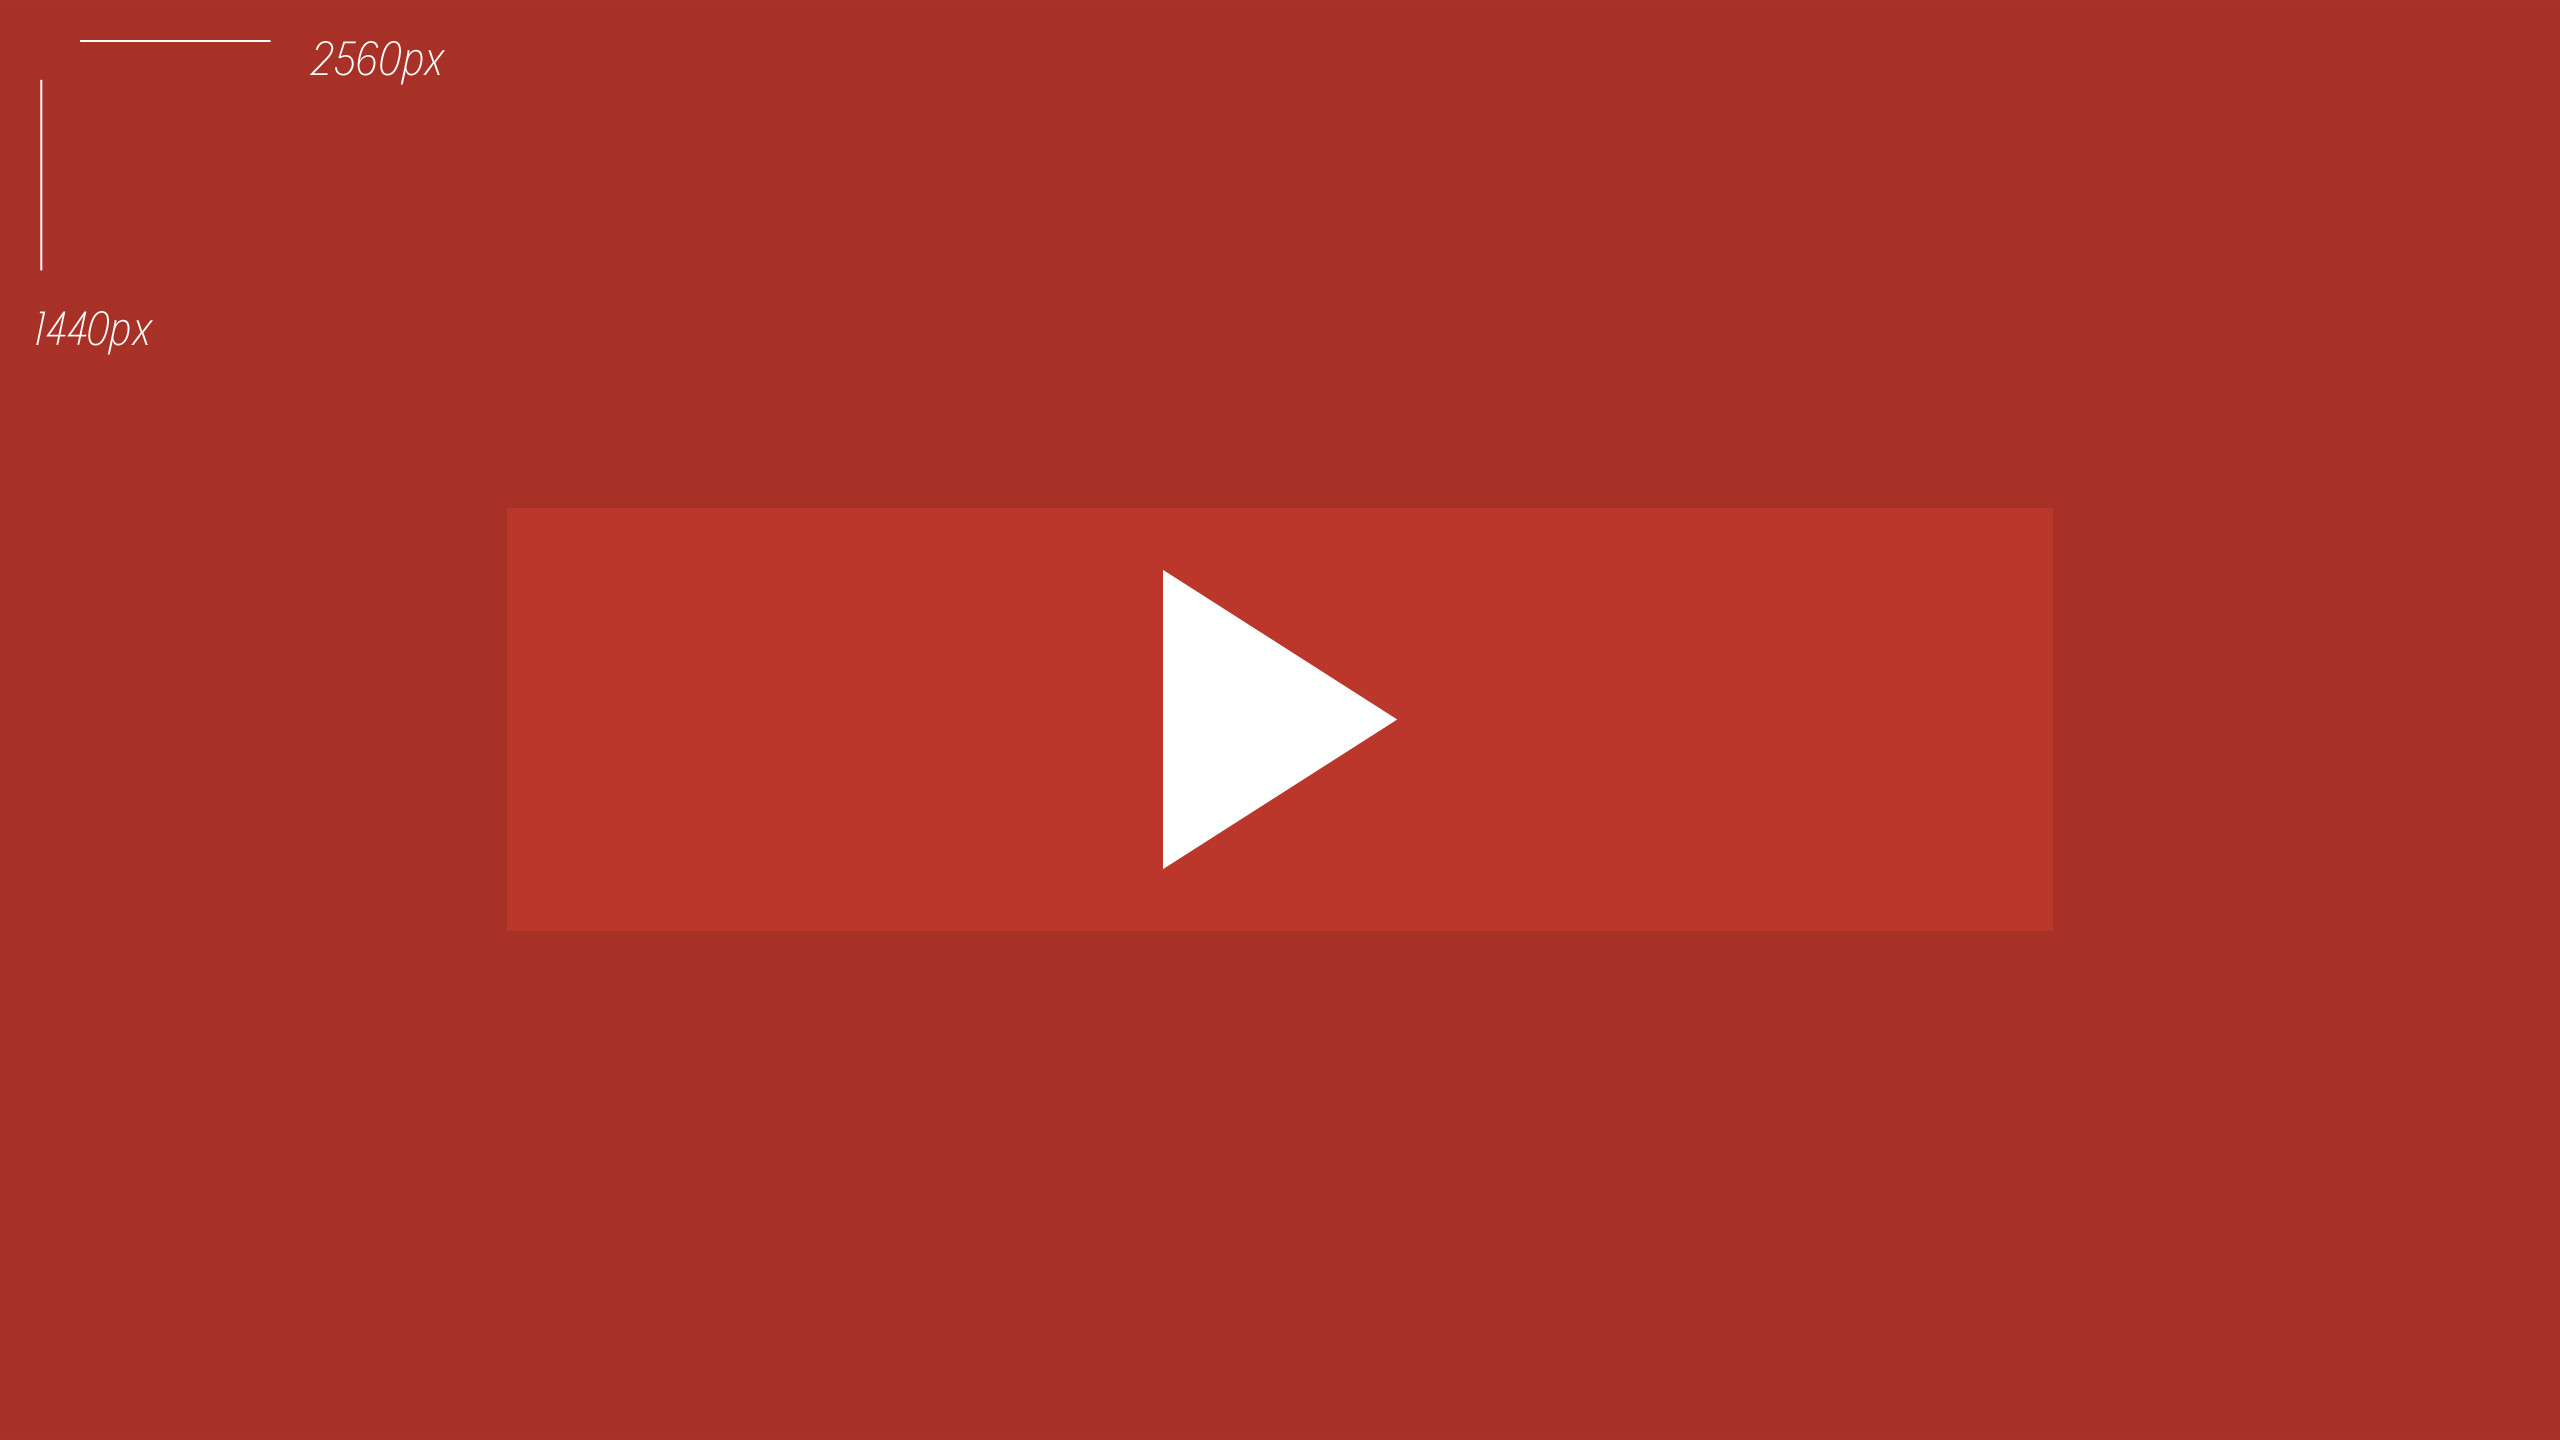 youtube channel art backgrounds cool youtube channel art 2048×1152 0 HTML  code. Repix Like View Pic